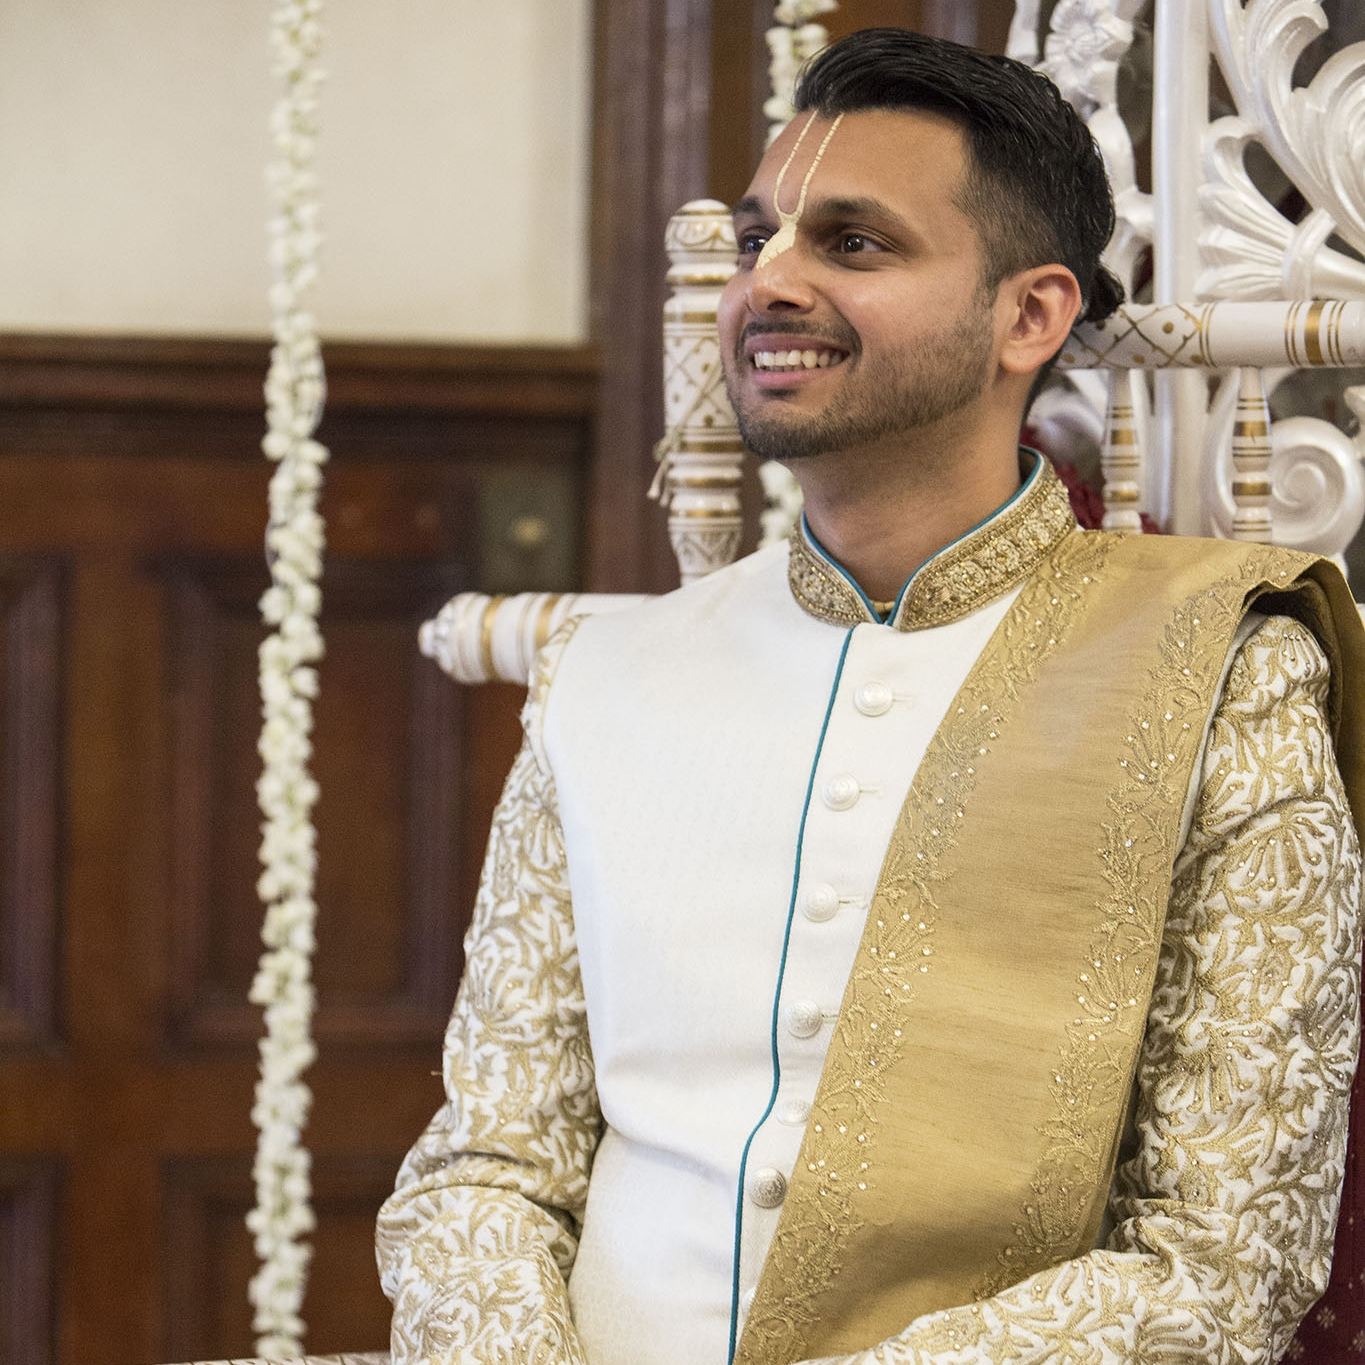 elizabethgphotography_kingslangley_hertfordshire_fineart_indian_wedding_photography_jigna_bhuja_bhaktivedanta_manor_watford_86.jpg